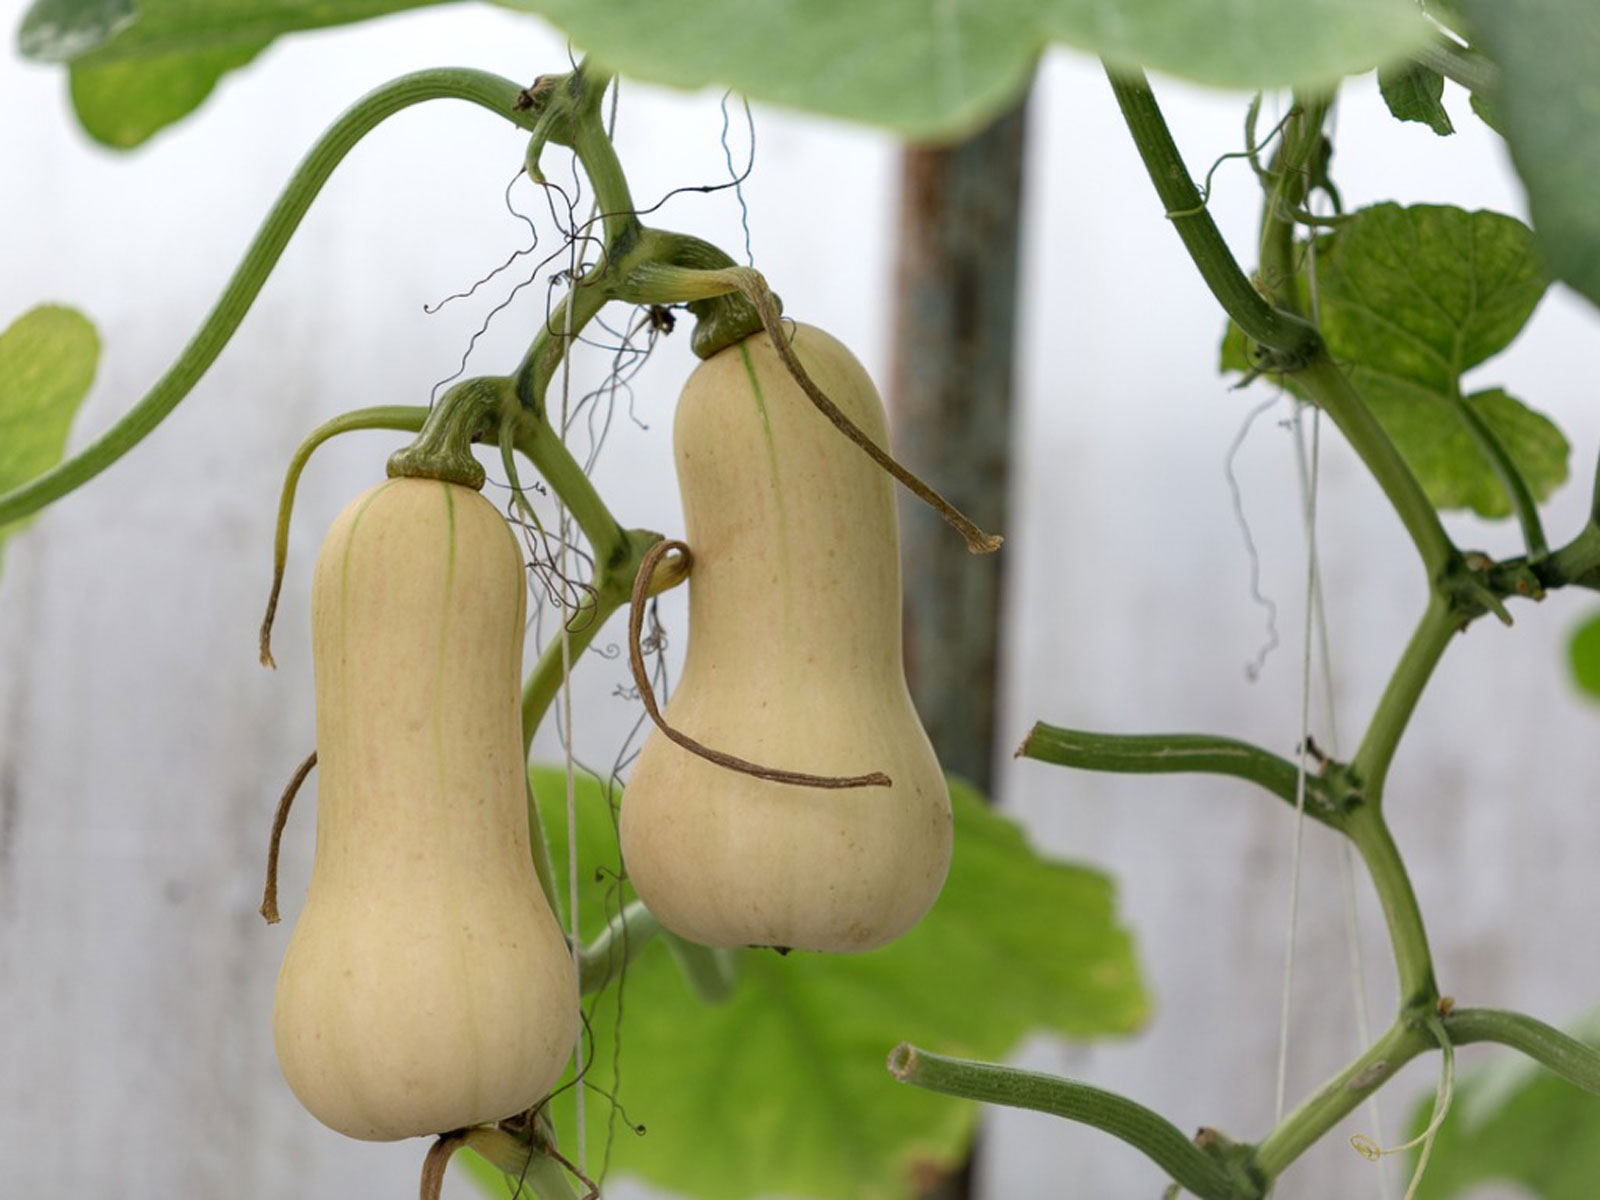 Growing Butternut Squash How To Grow Butternut Squash Plants